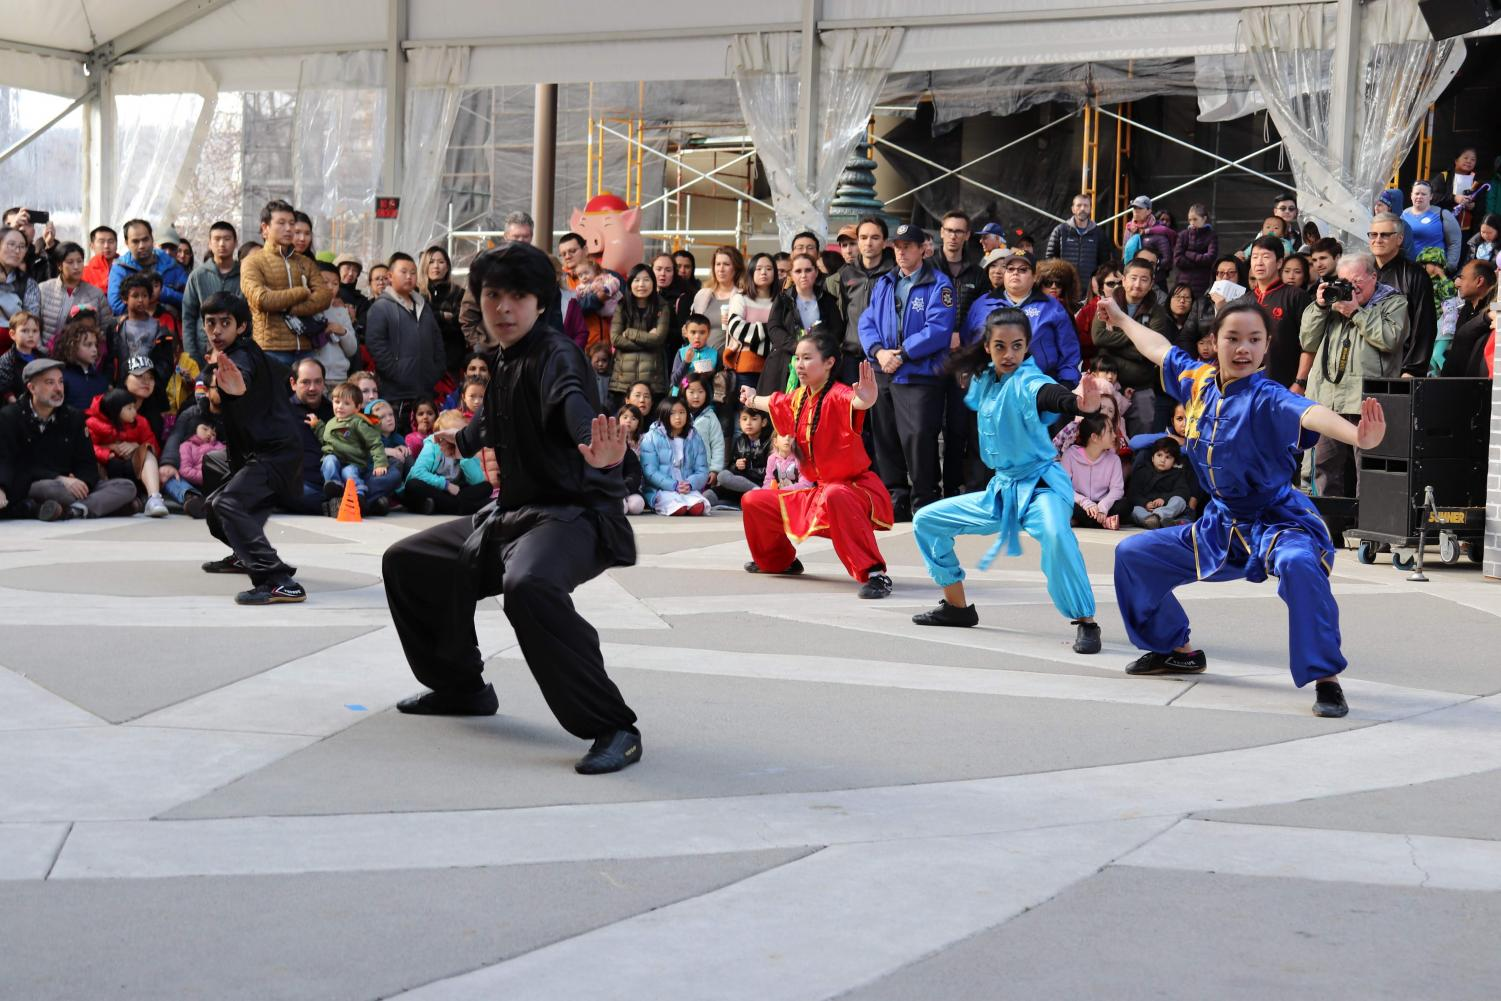 California+Kung+Fu+%26+Tai+Chi+martial+artists%2C+and+Shaolin%0ALion+Dancers+performed+in%0Athe+square.